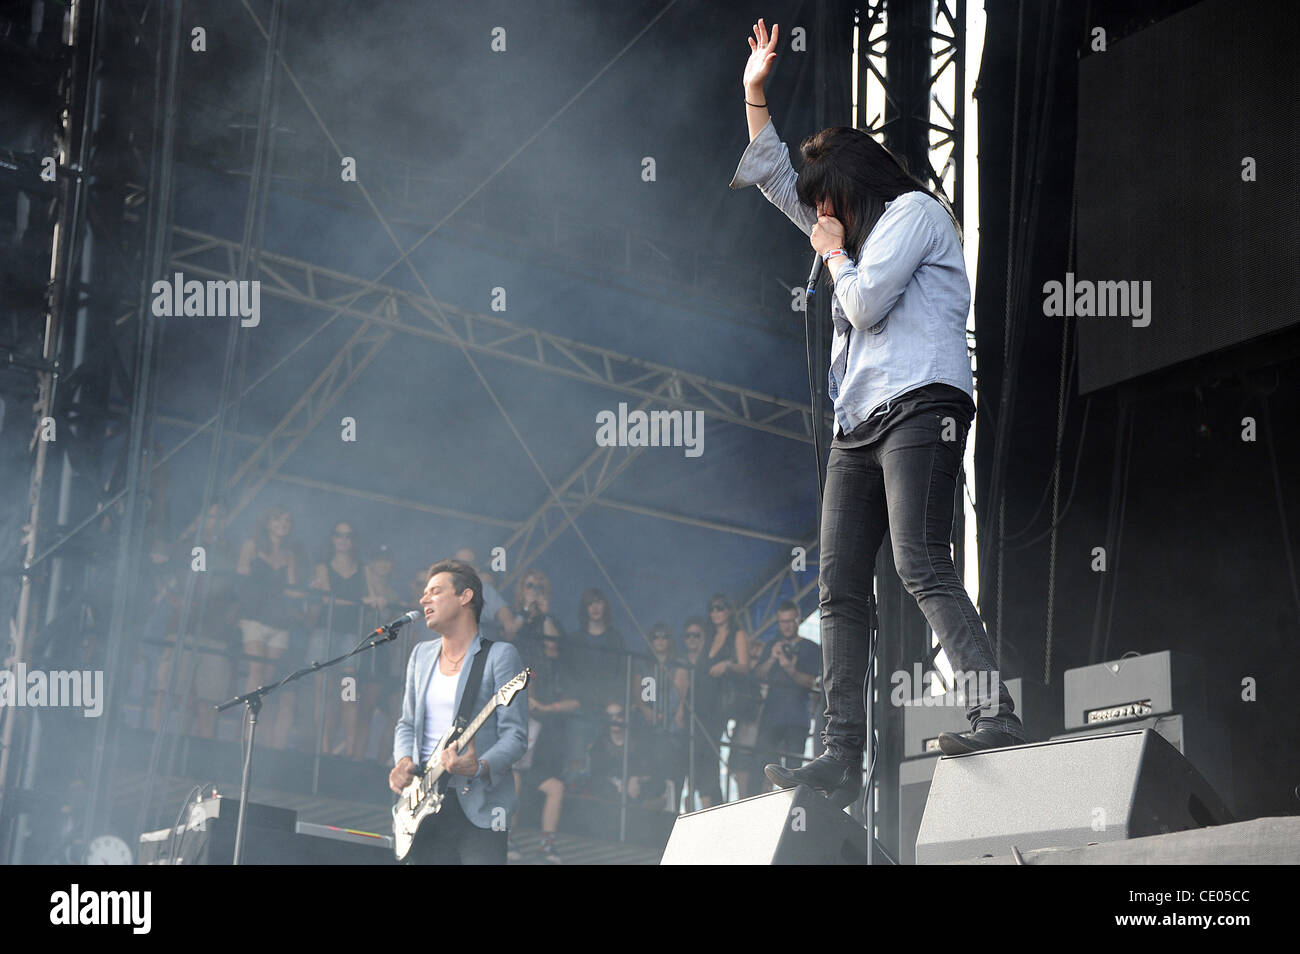 Aug 5, 2011 - Chicago, Illinois; USA - Singer ALISON MOSSHART and Guitarist JAMES HINCE of the band The Kills performs - Stock Image